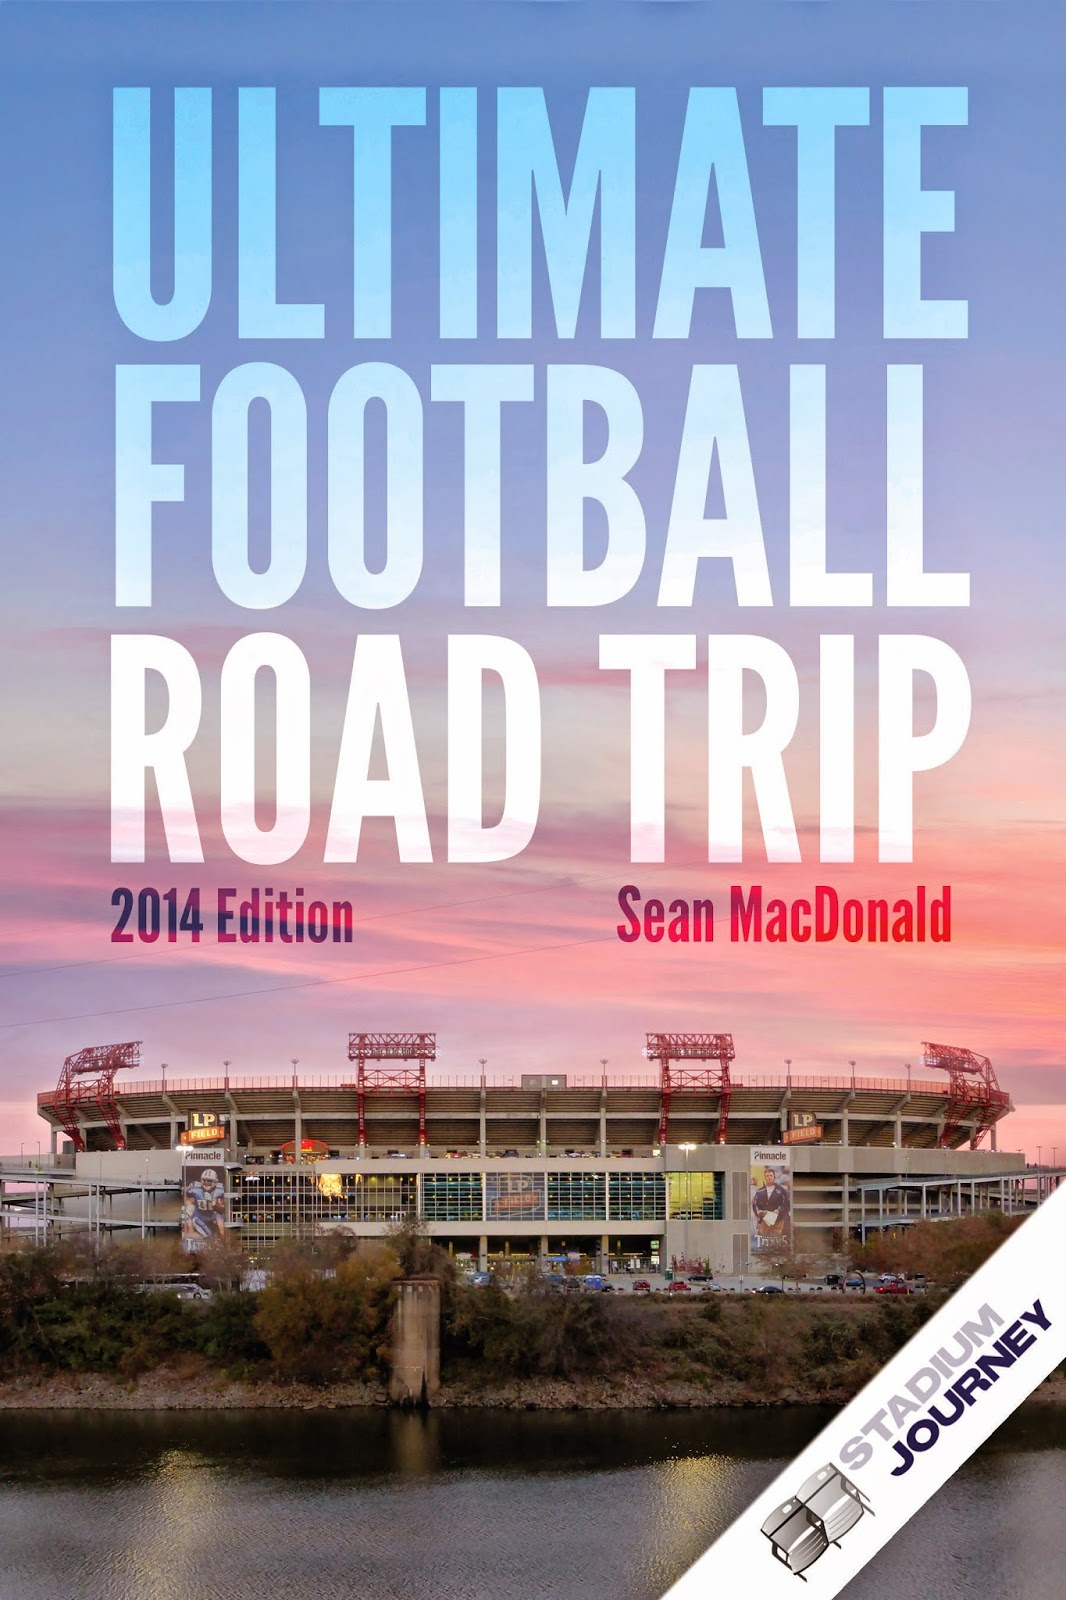 Rock Road Trip The Ultimate Collection: Sports Road Trips: The Ultimate Football Road Trip (2014